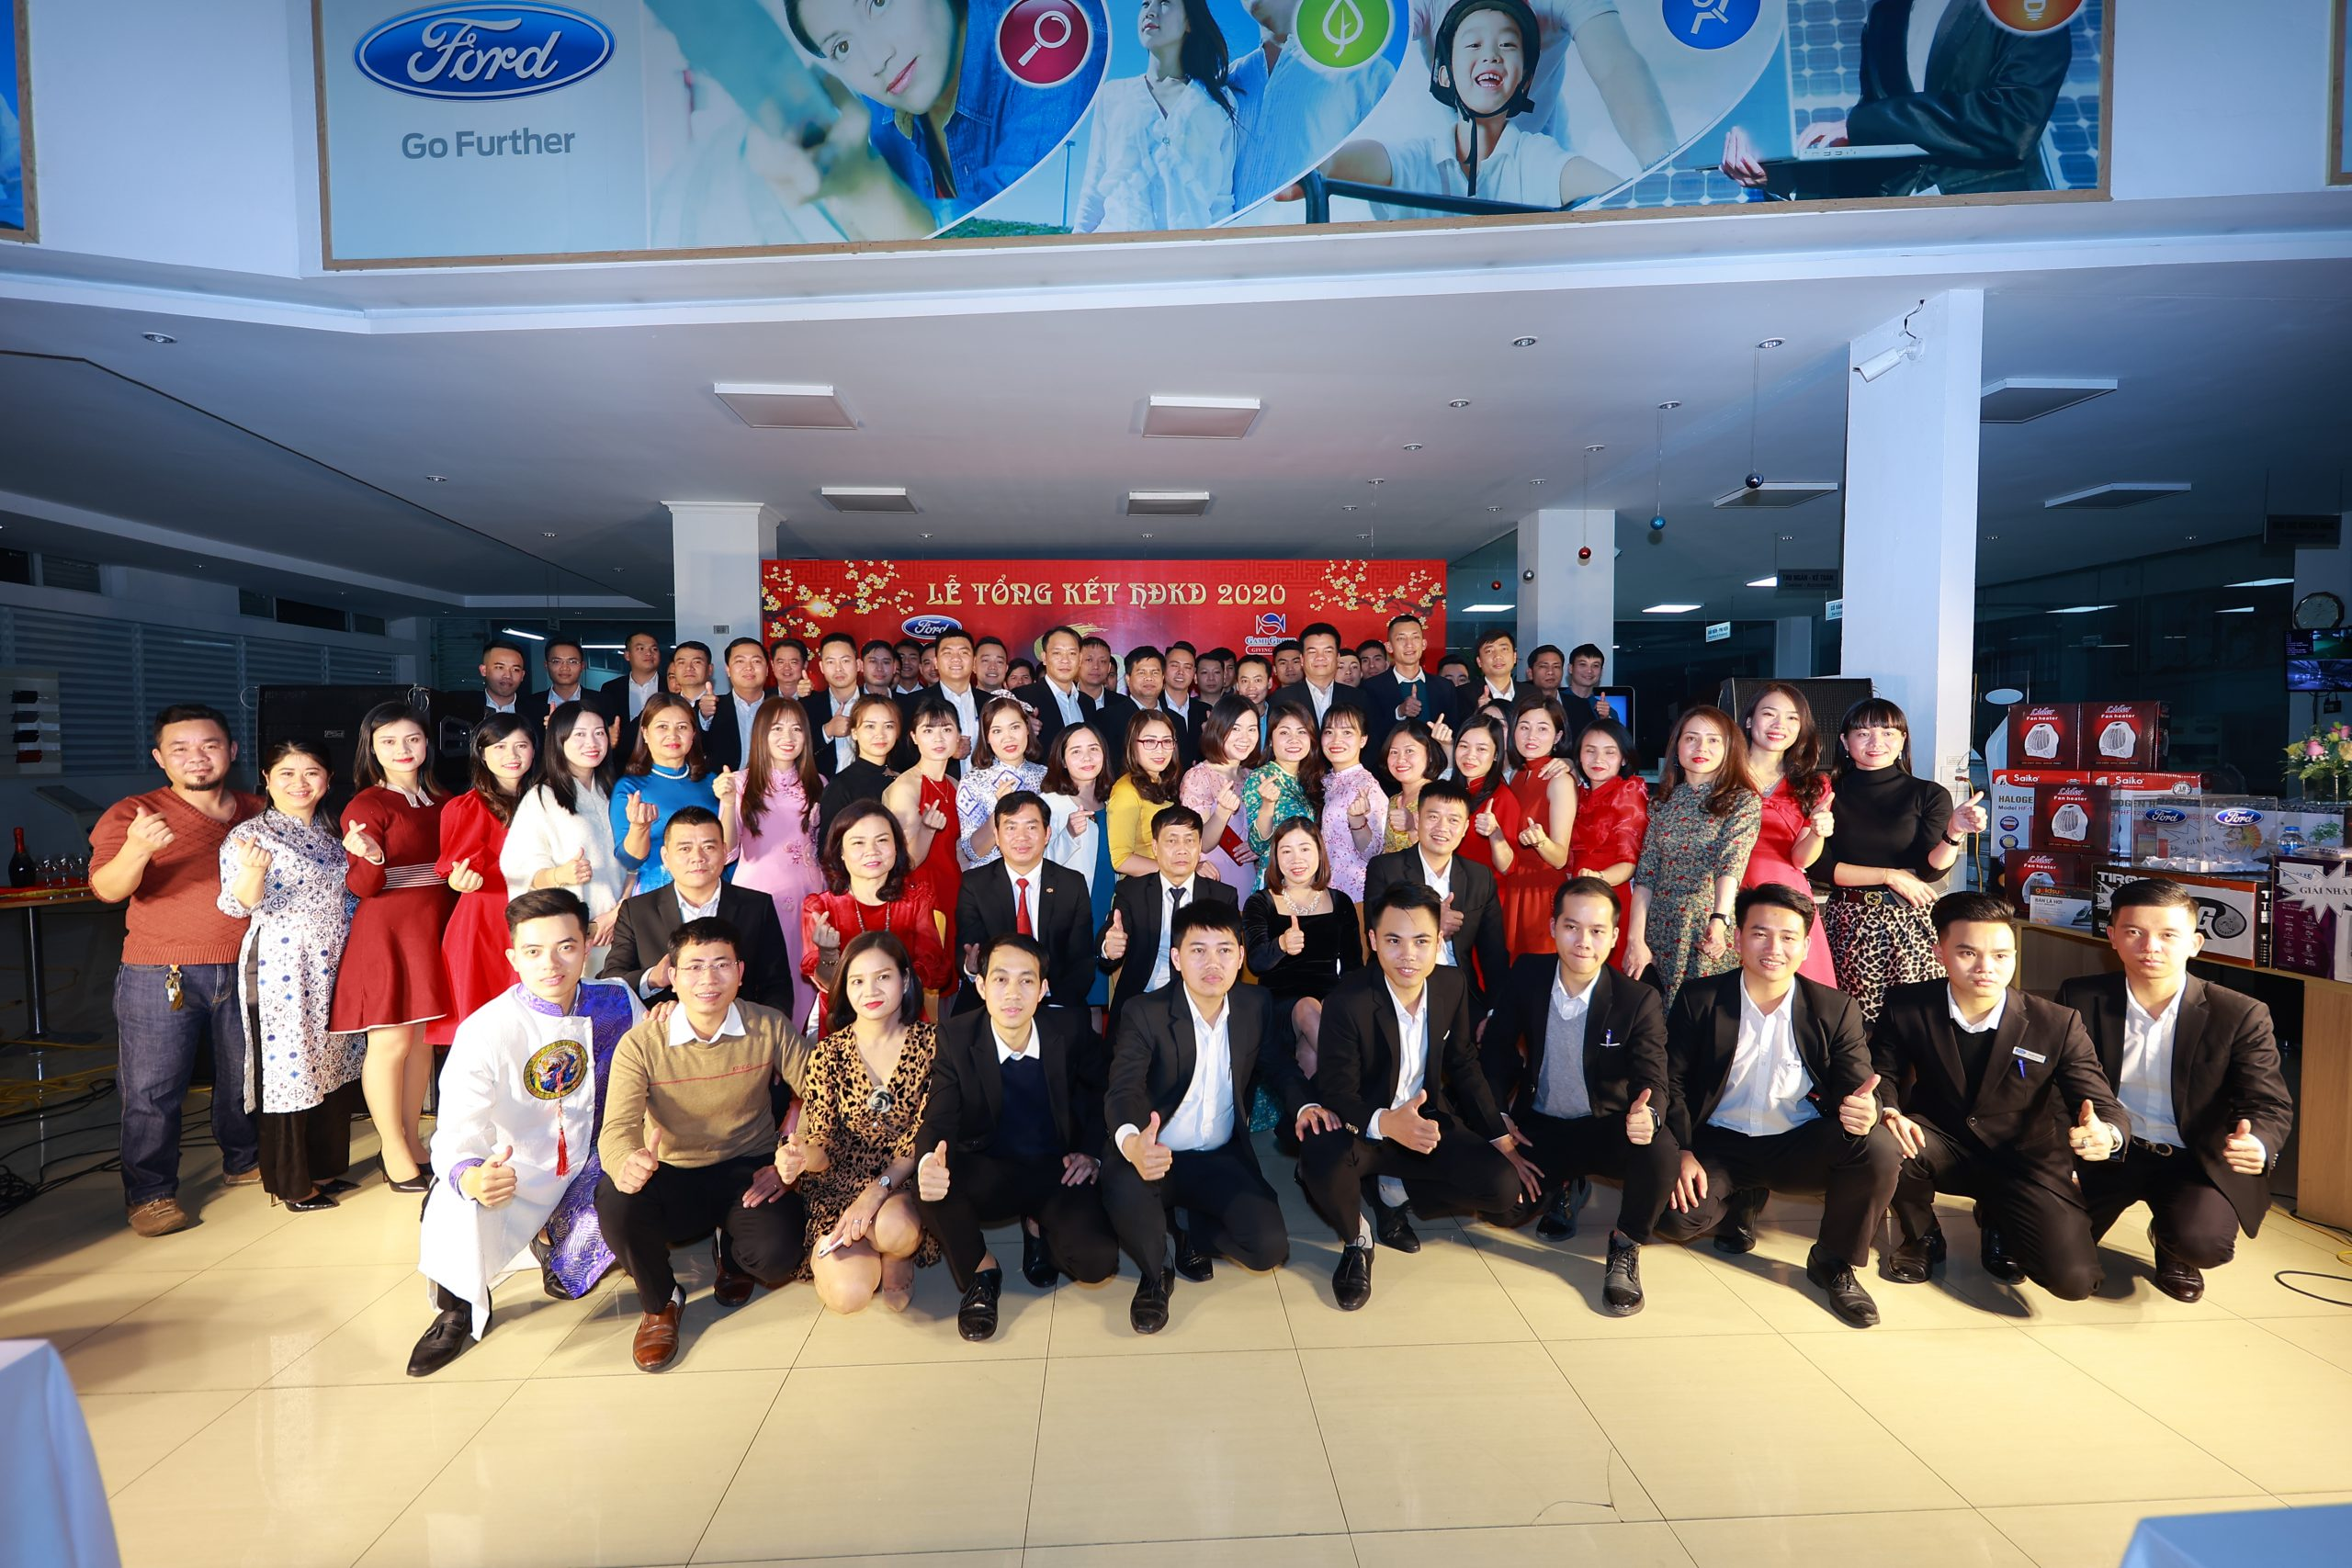 LỄ TỔNG KẾT – YEAR END PARTY  2020